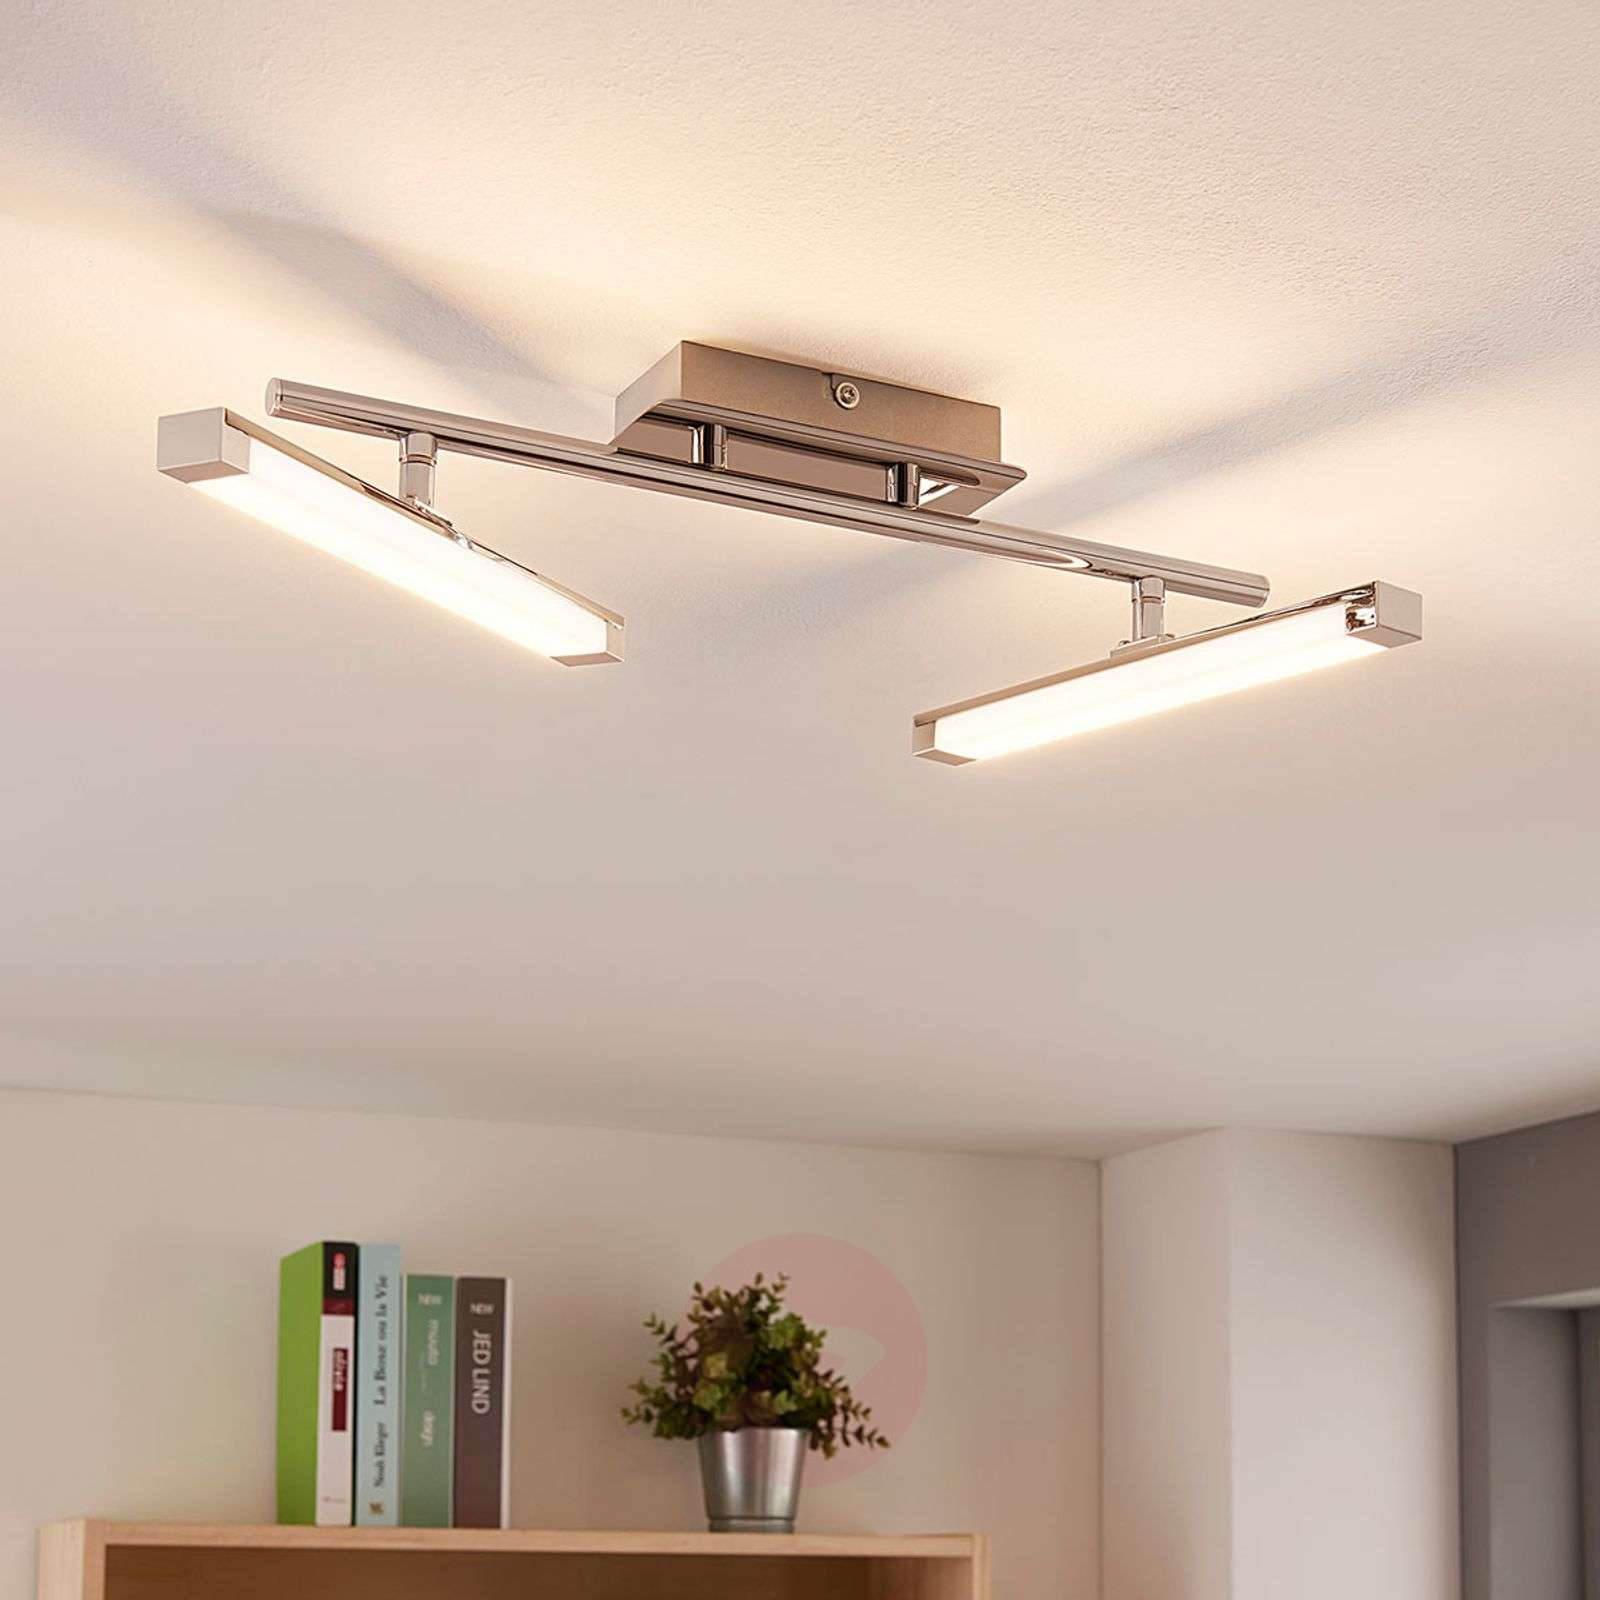 Plafoniere Led A Soffitto Moderno Dimmerabile : Acquista moderna plafoniera led pilou dimmerabile lampade